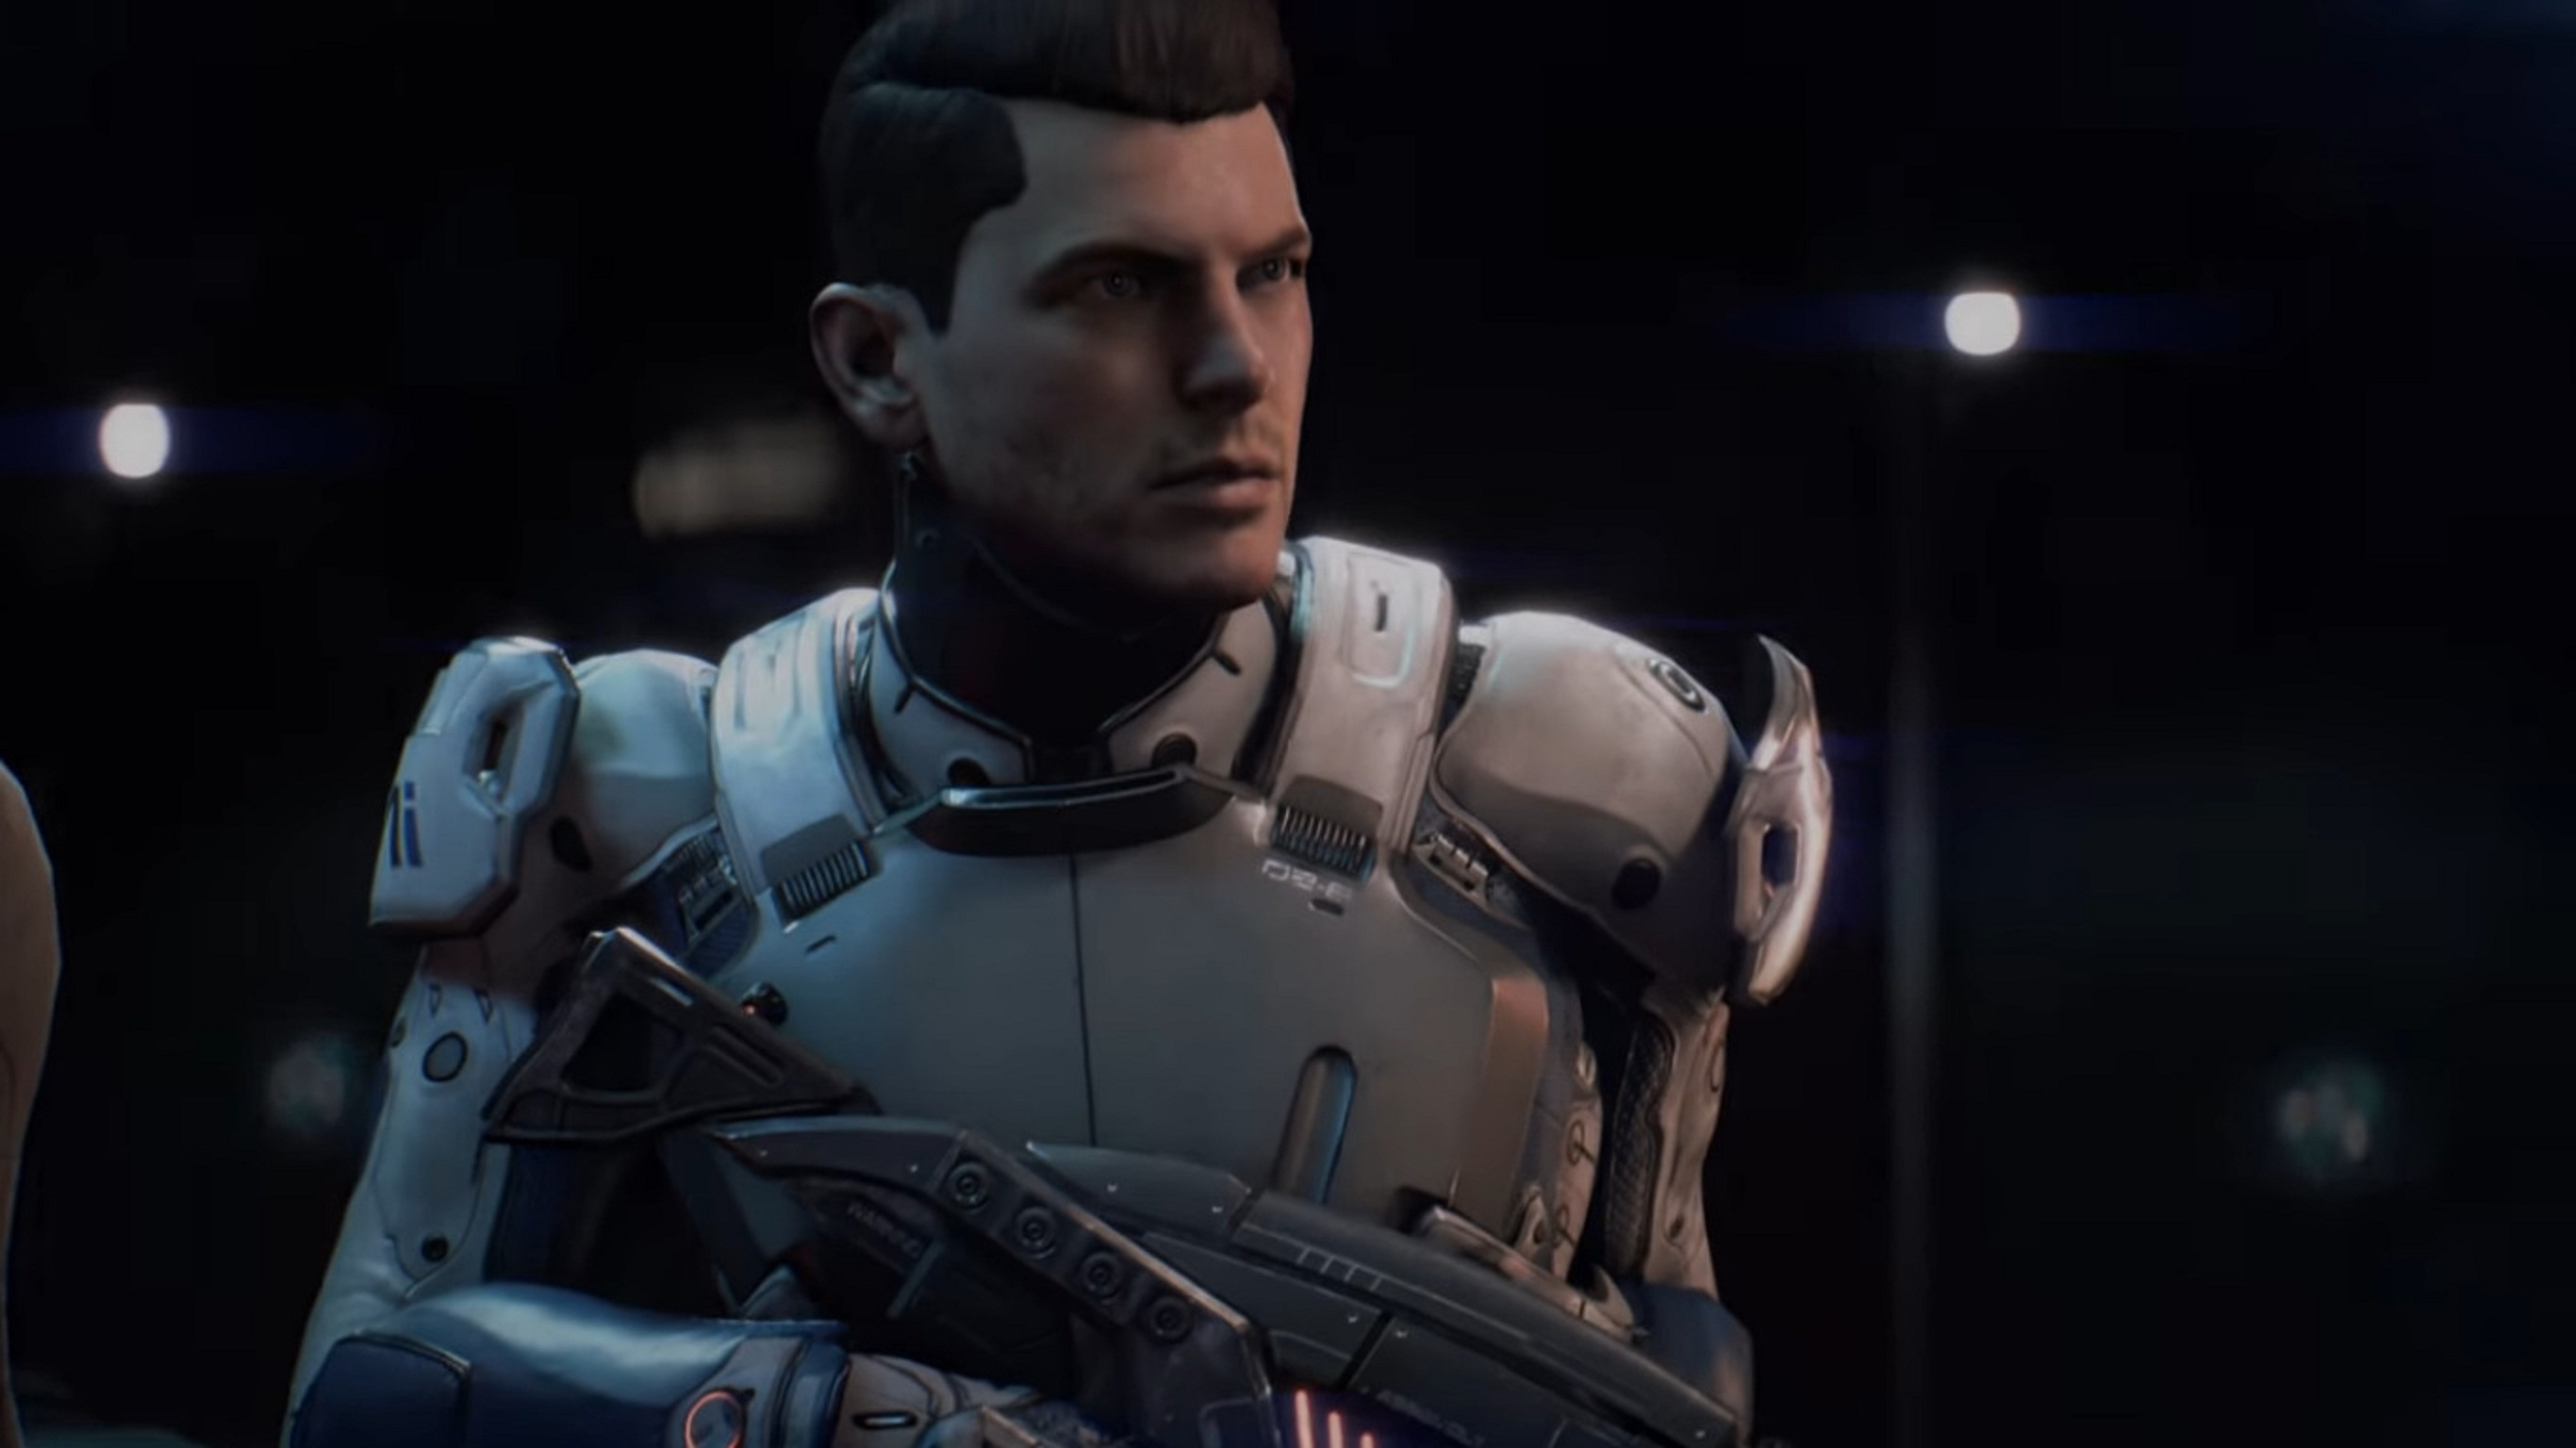 Happy N7 Days: Bioware Honors Their Past Franchise 'Mass Effect' With Special Theme Skins Up For Grabs